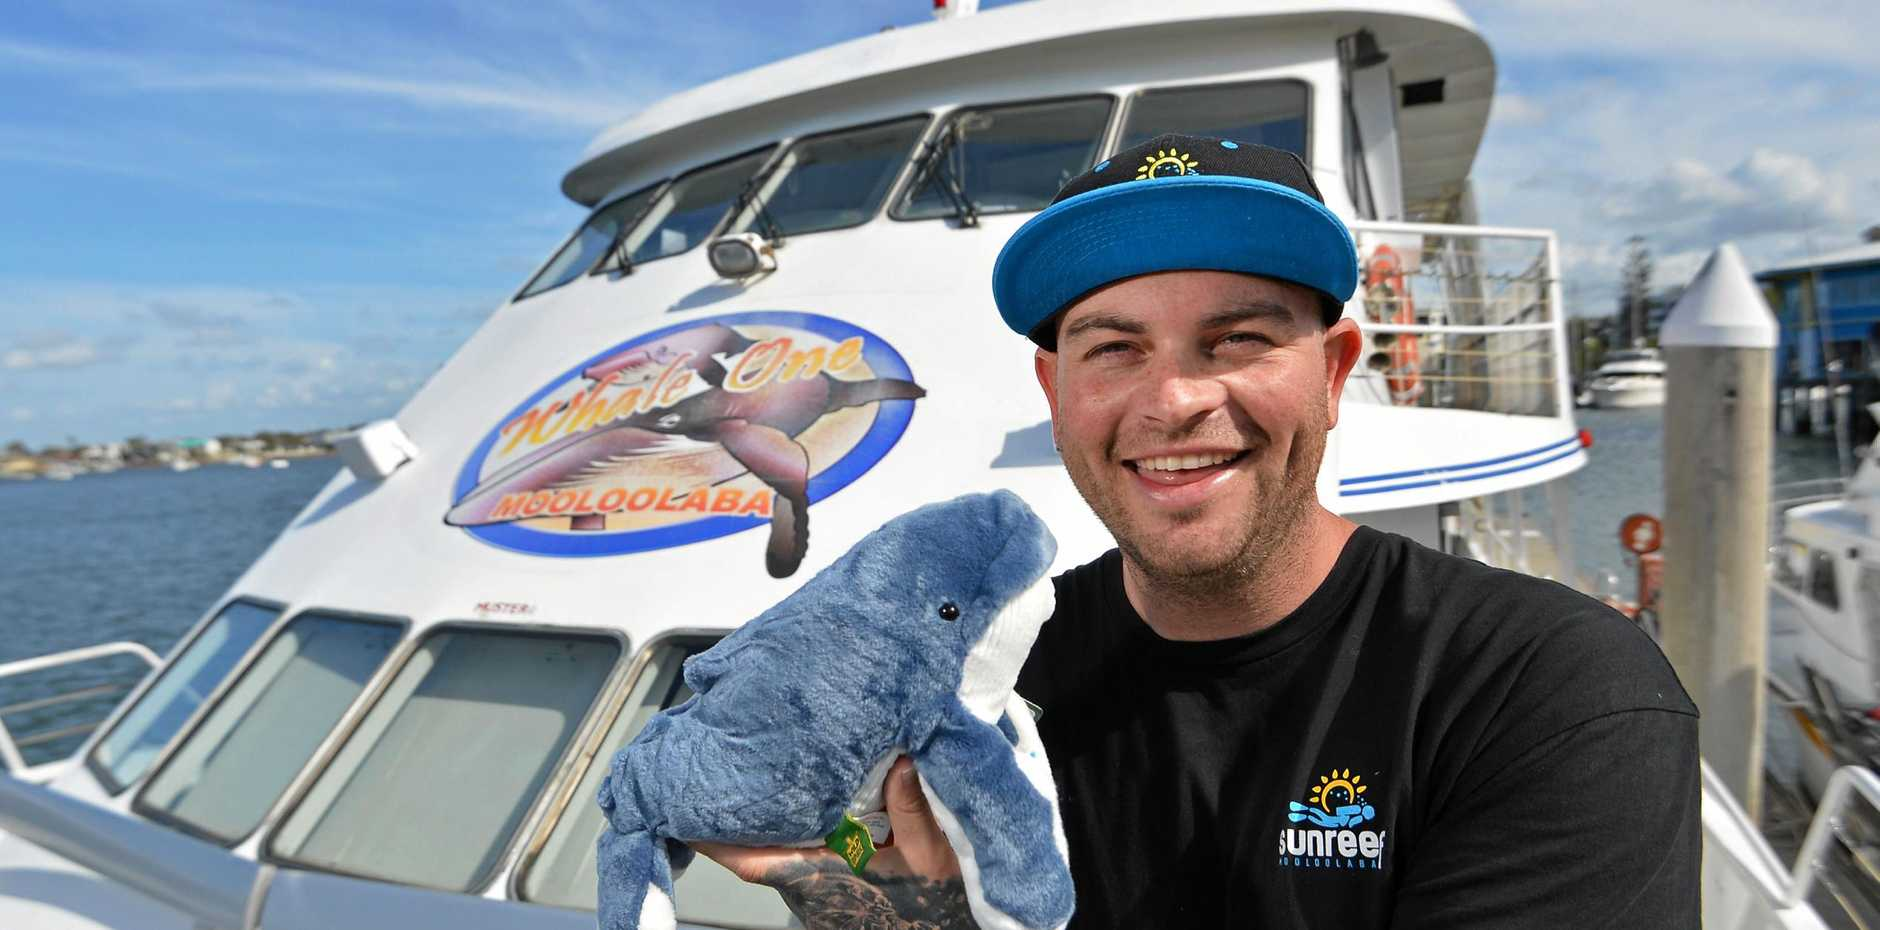 DREAM JOB: Scuba diving and whale swim operator Dan Hart of Sunreef Mooloolaba has added whale watching to his company's services with the purchase of Whale One.